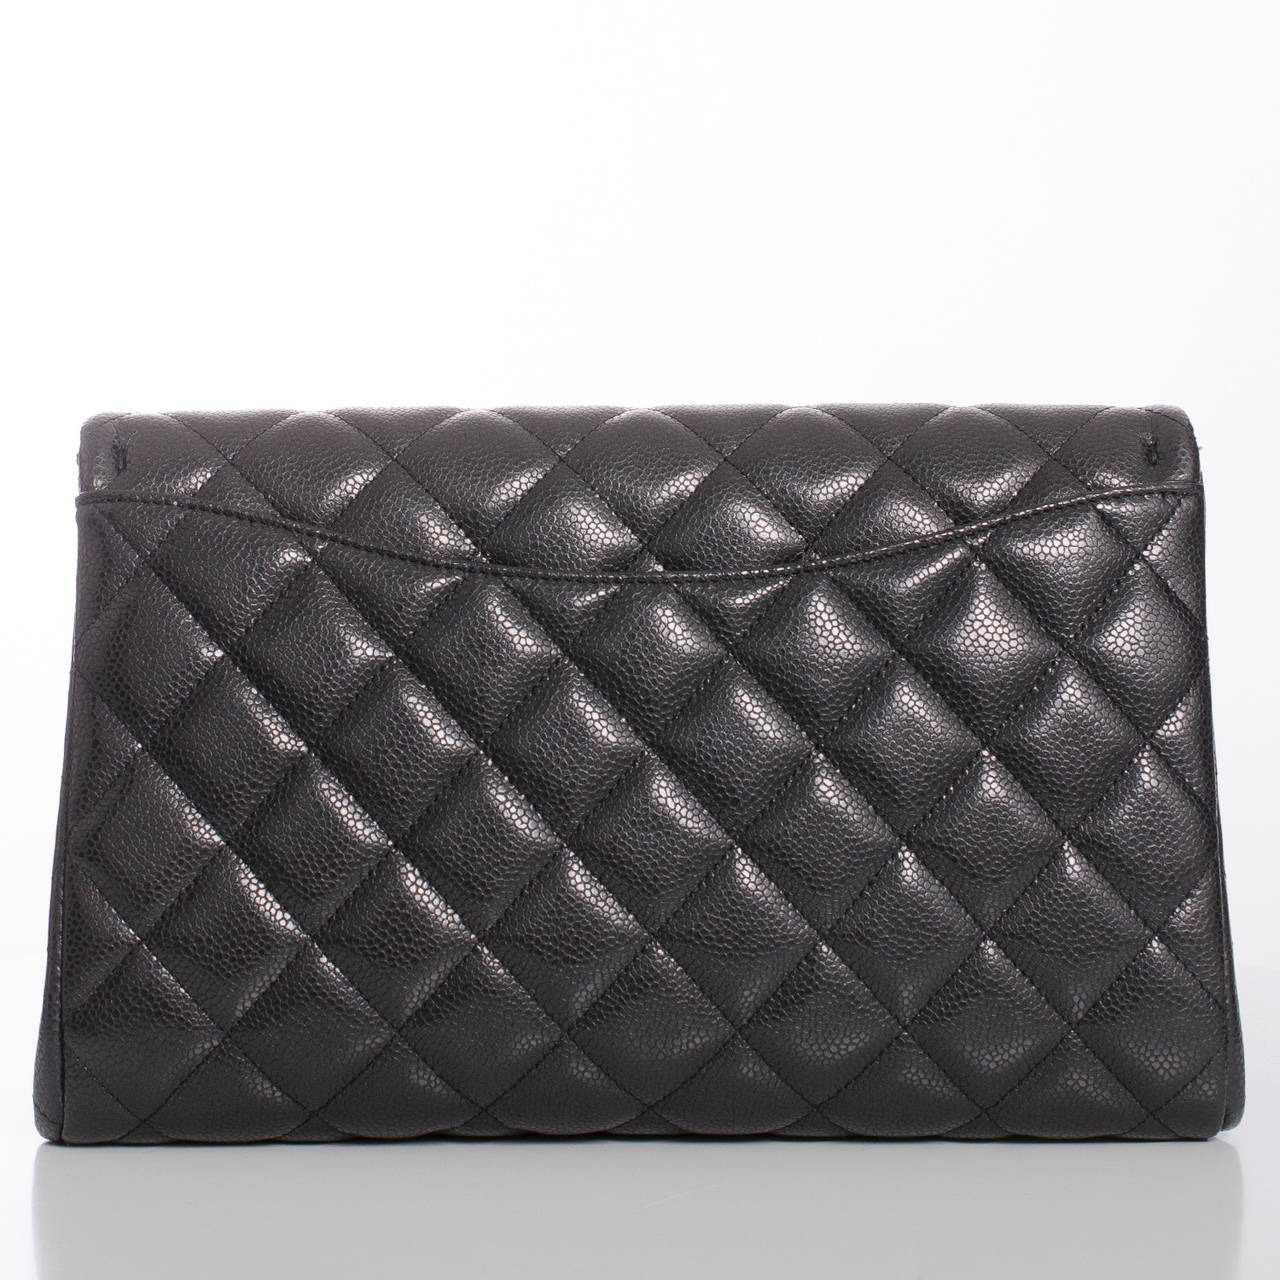 Chanel Black Quilted Caviar New Clutch With Chain In New never worn Condition For Sale In New York, NY